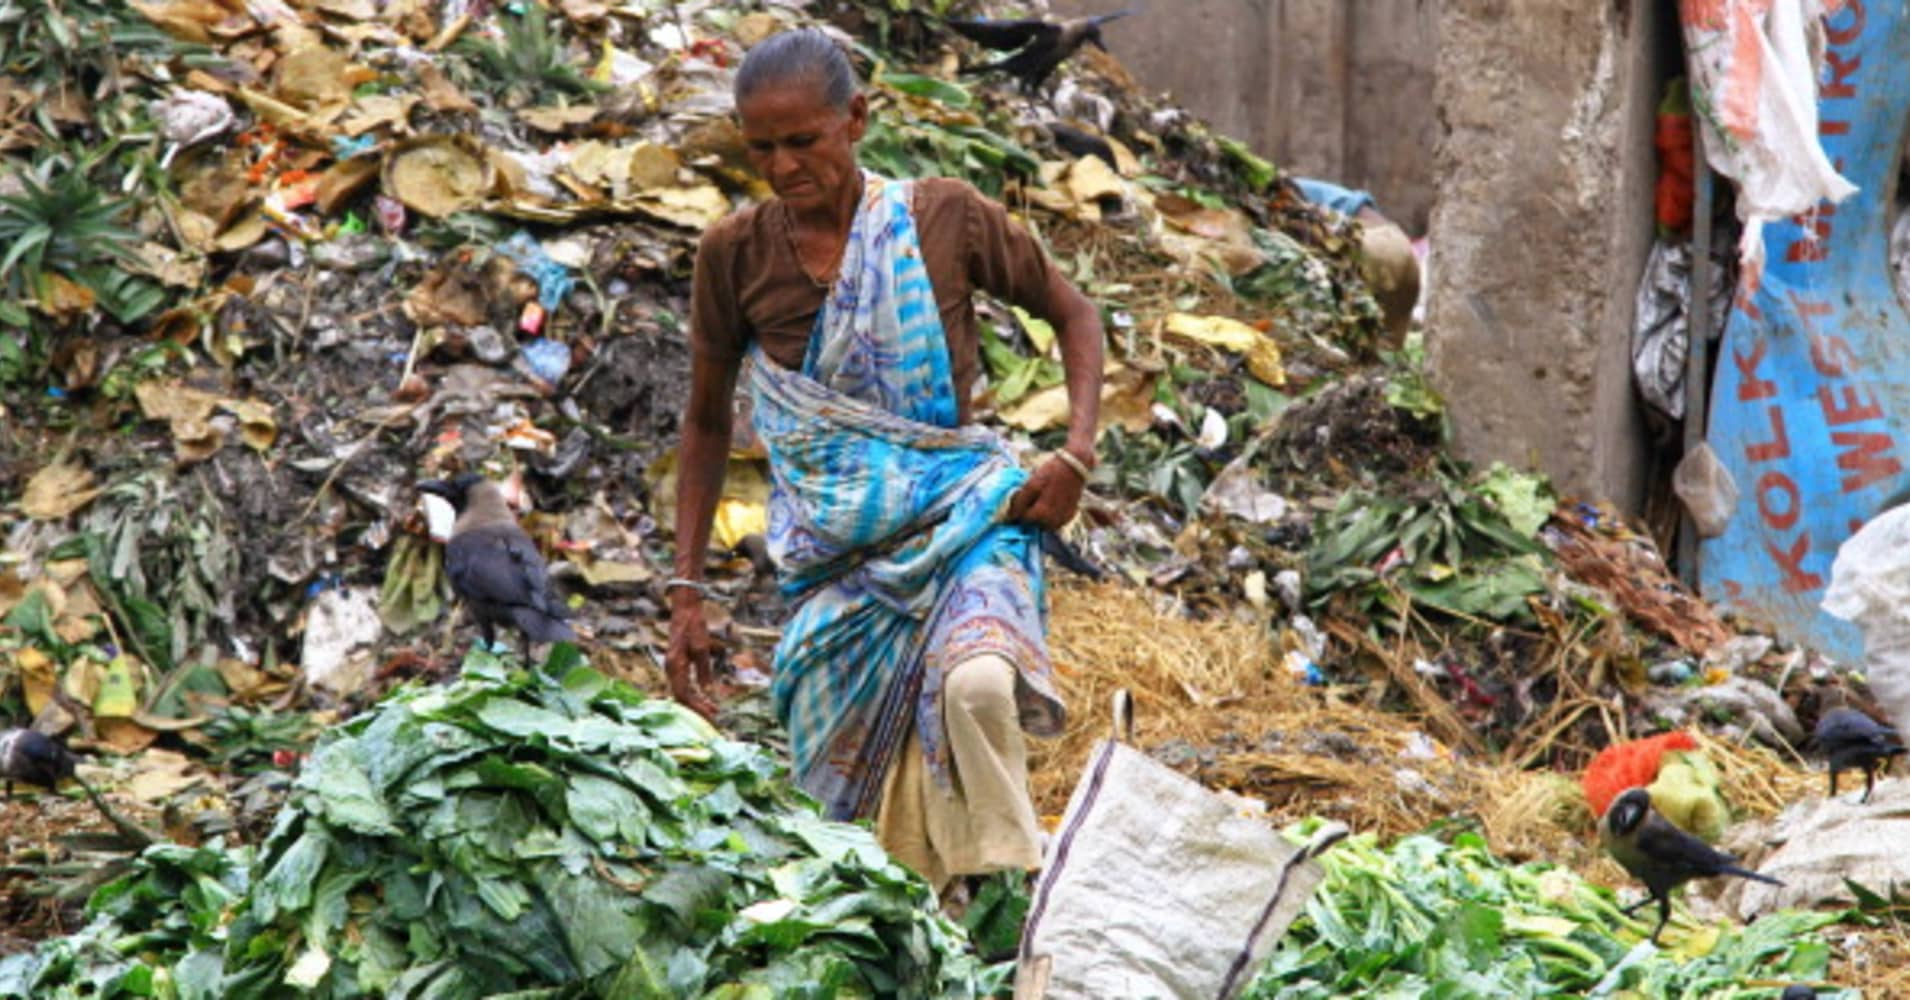 This ancient storage idea may resolve Asia's food waste problem